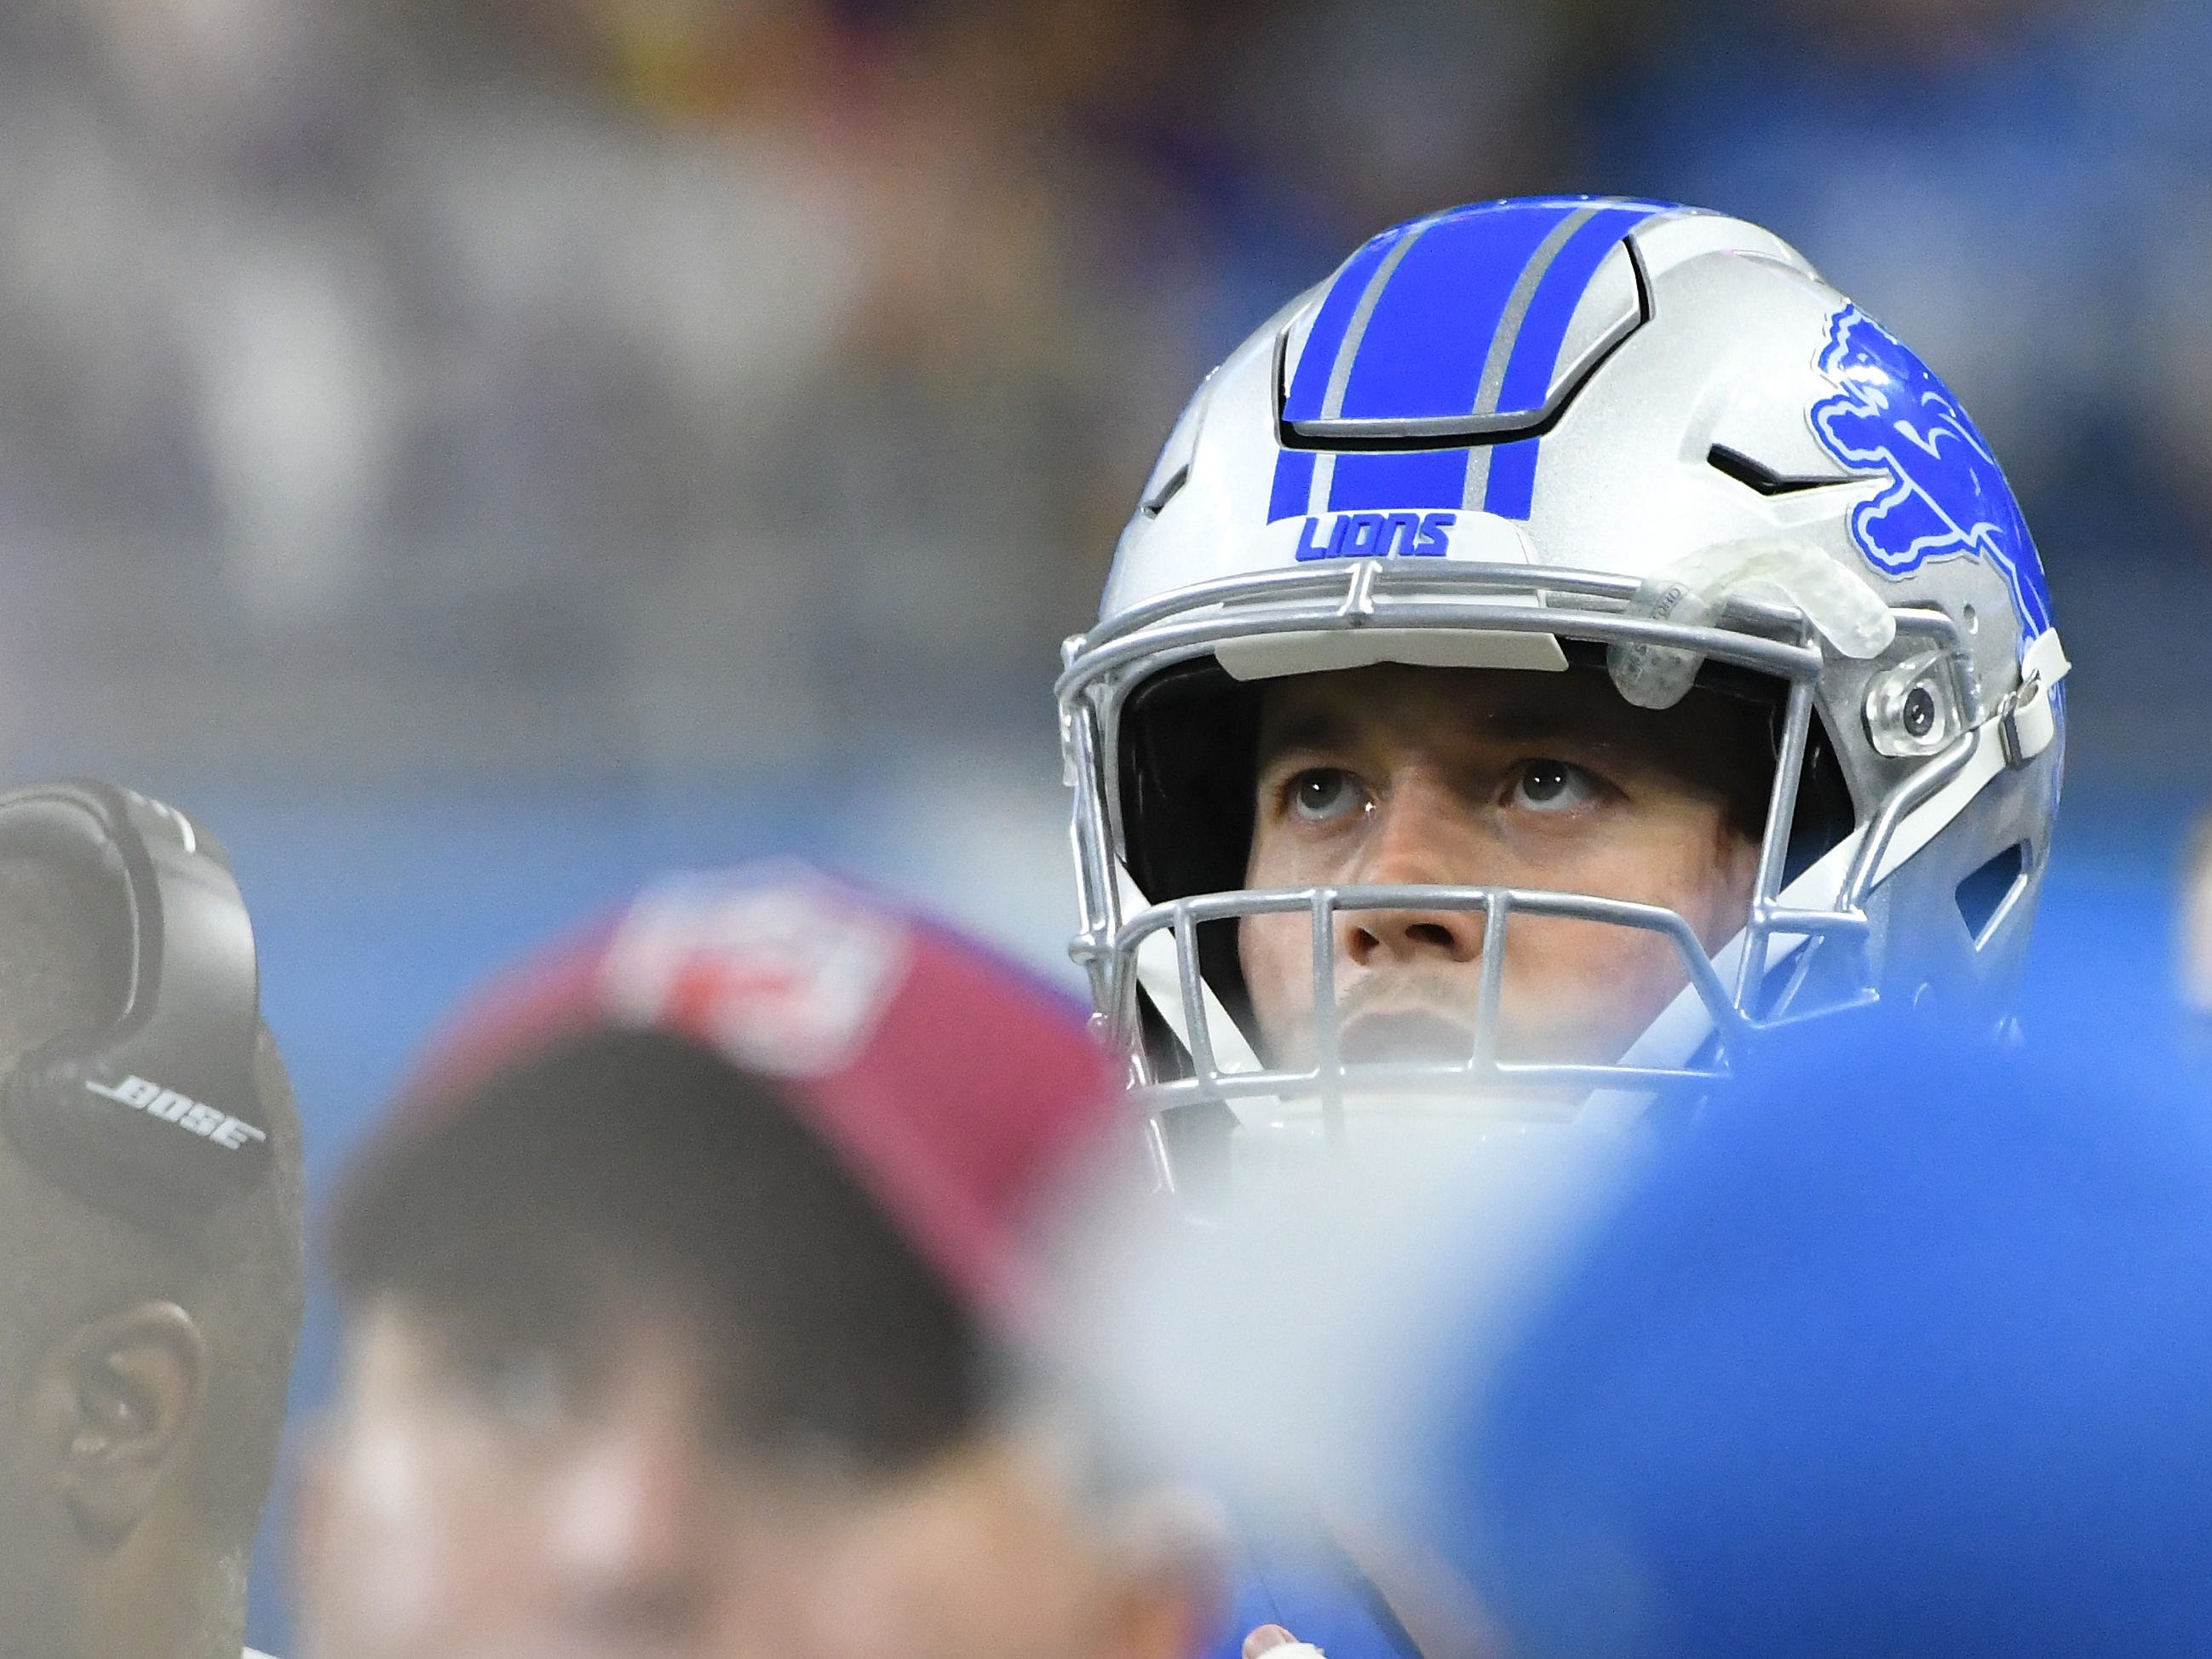 Lions quarterback Matt Stafford watches the video board with a taped up pinky finger as backup quarterback Matt Cassel finishes up the game late in the fourth quarter.